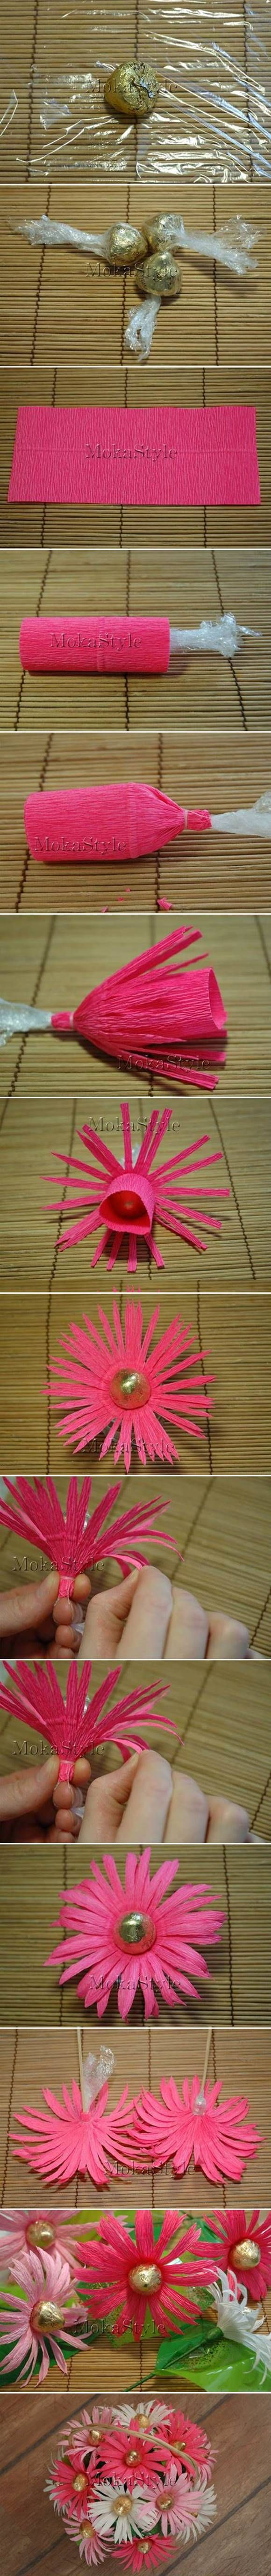 How to Make Chocolate Gerbera Flower Bouquet #craft #paper_flower